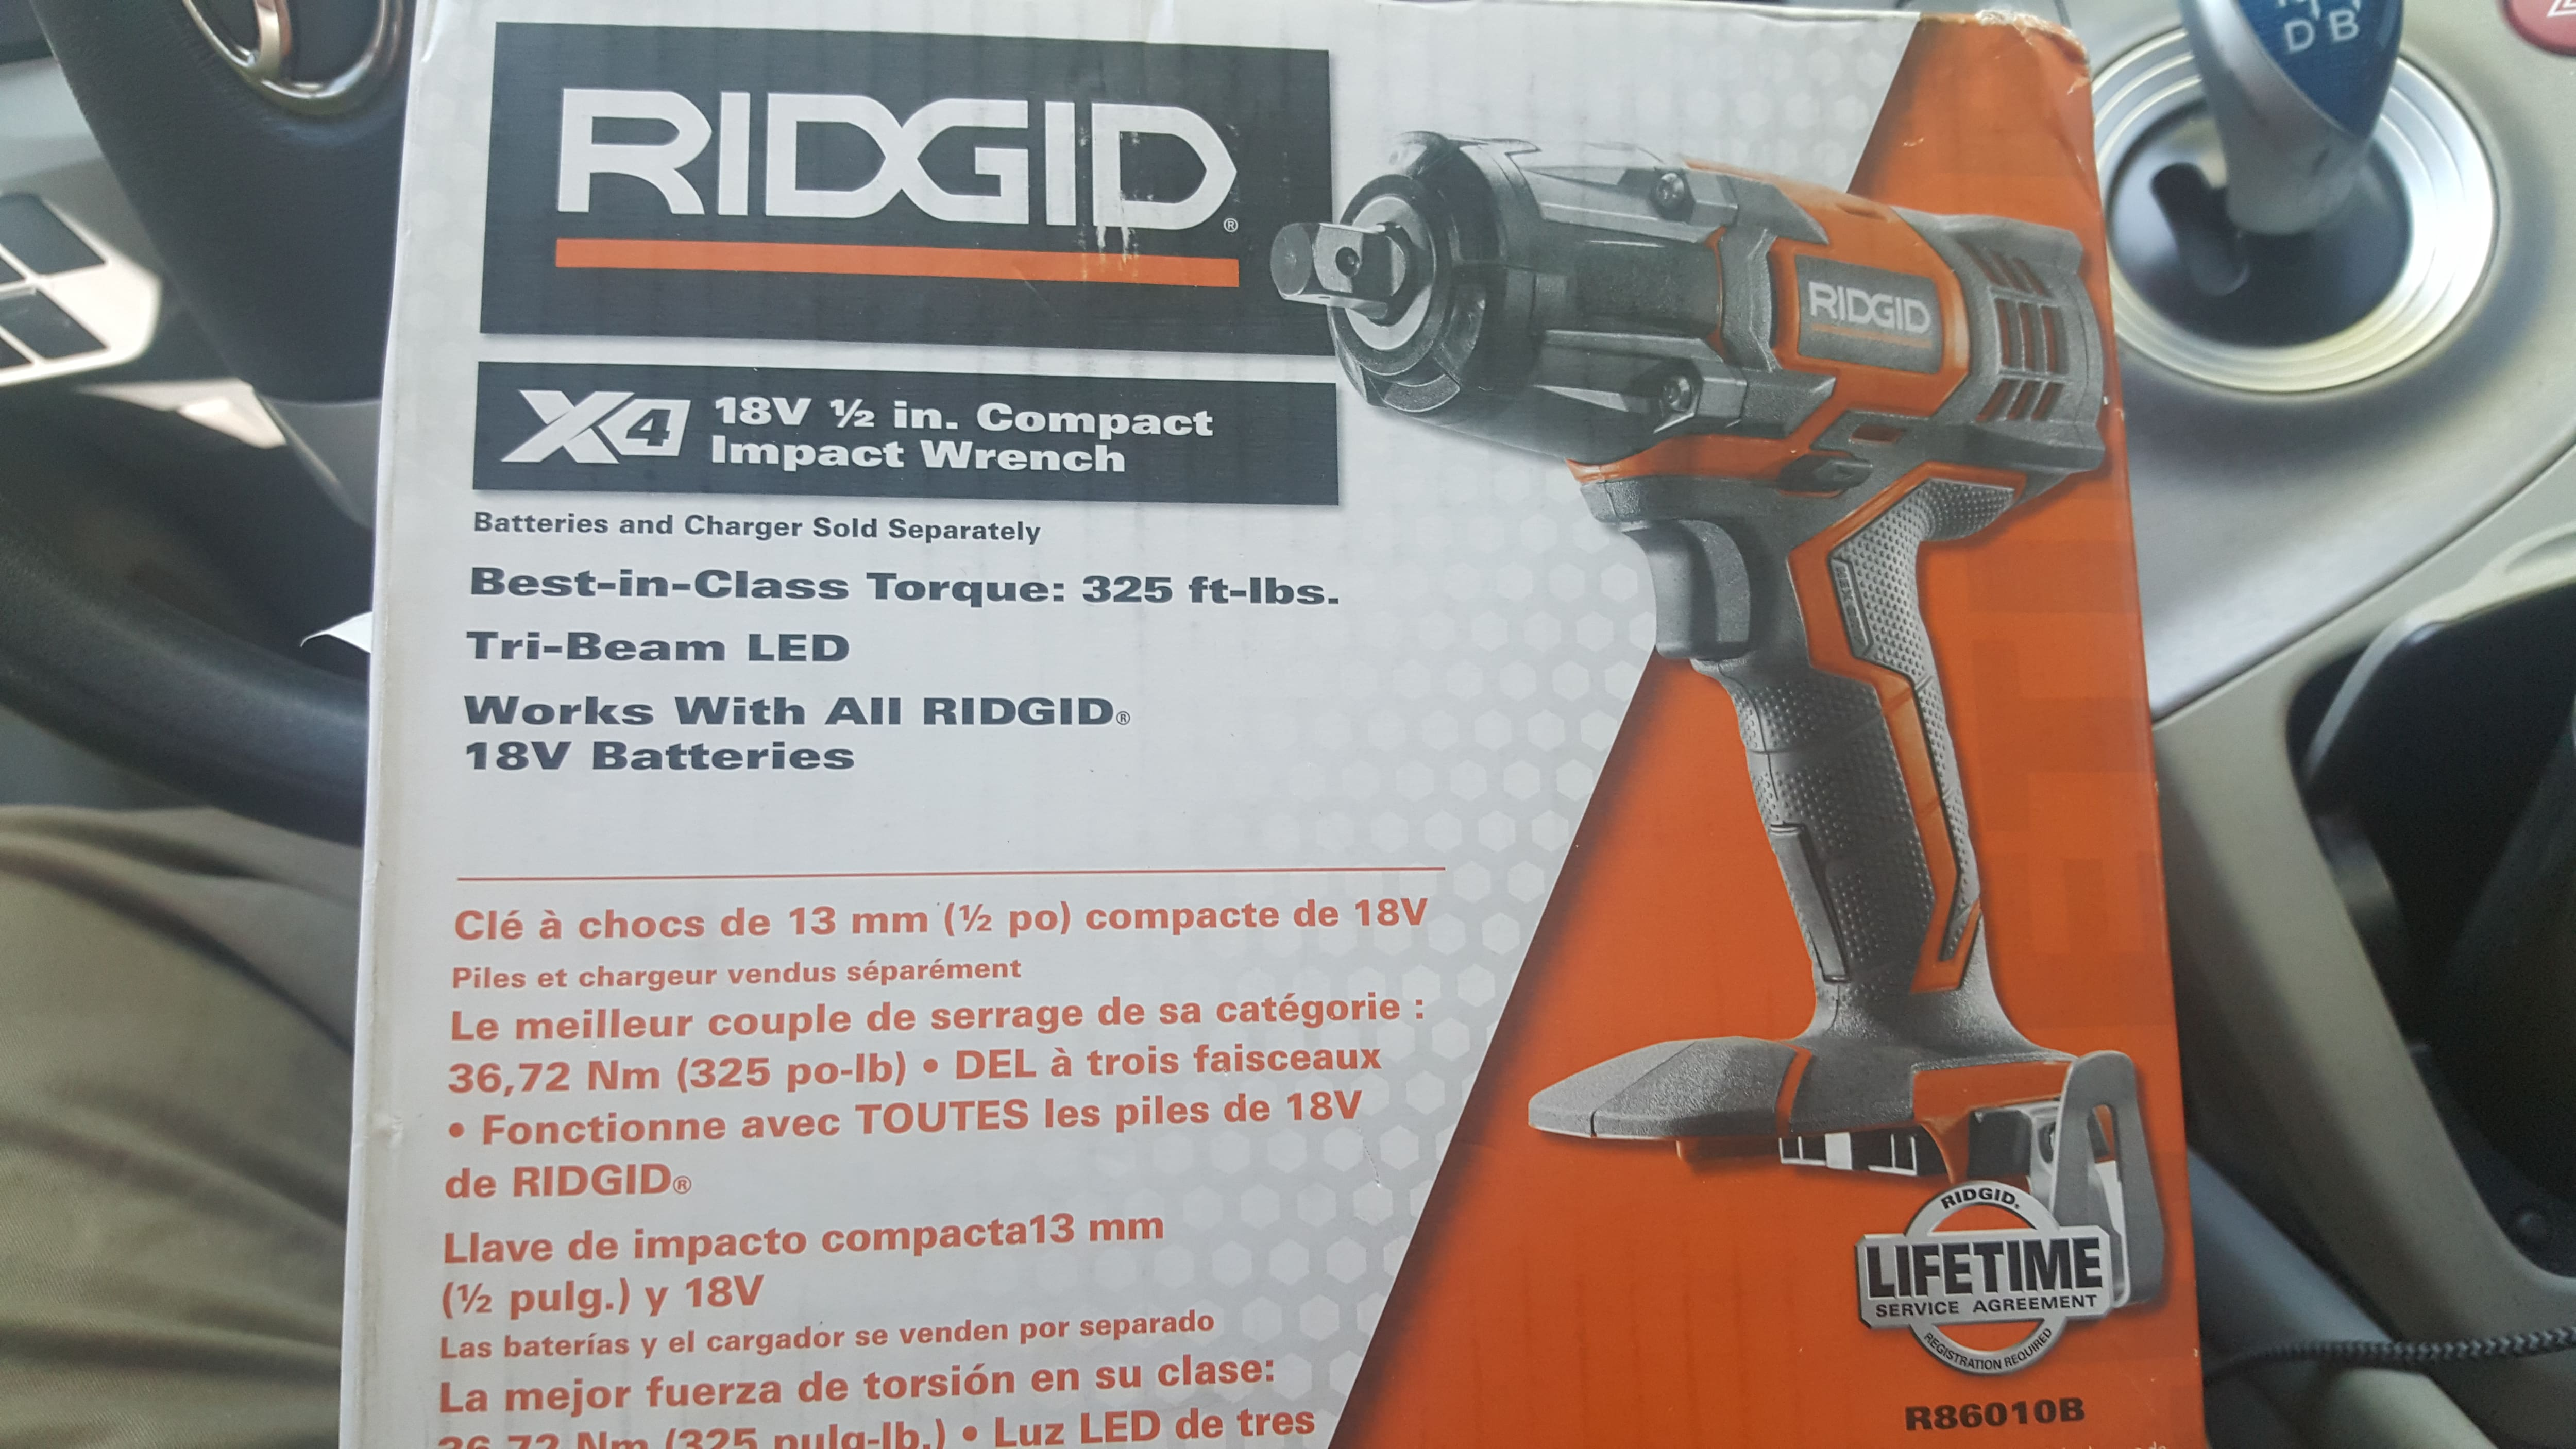 Ridgid 18v 1/2 inch Compact Impact Wrench at Home Depot $70 B&M YMMV